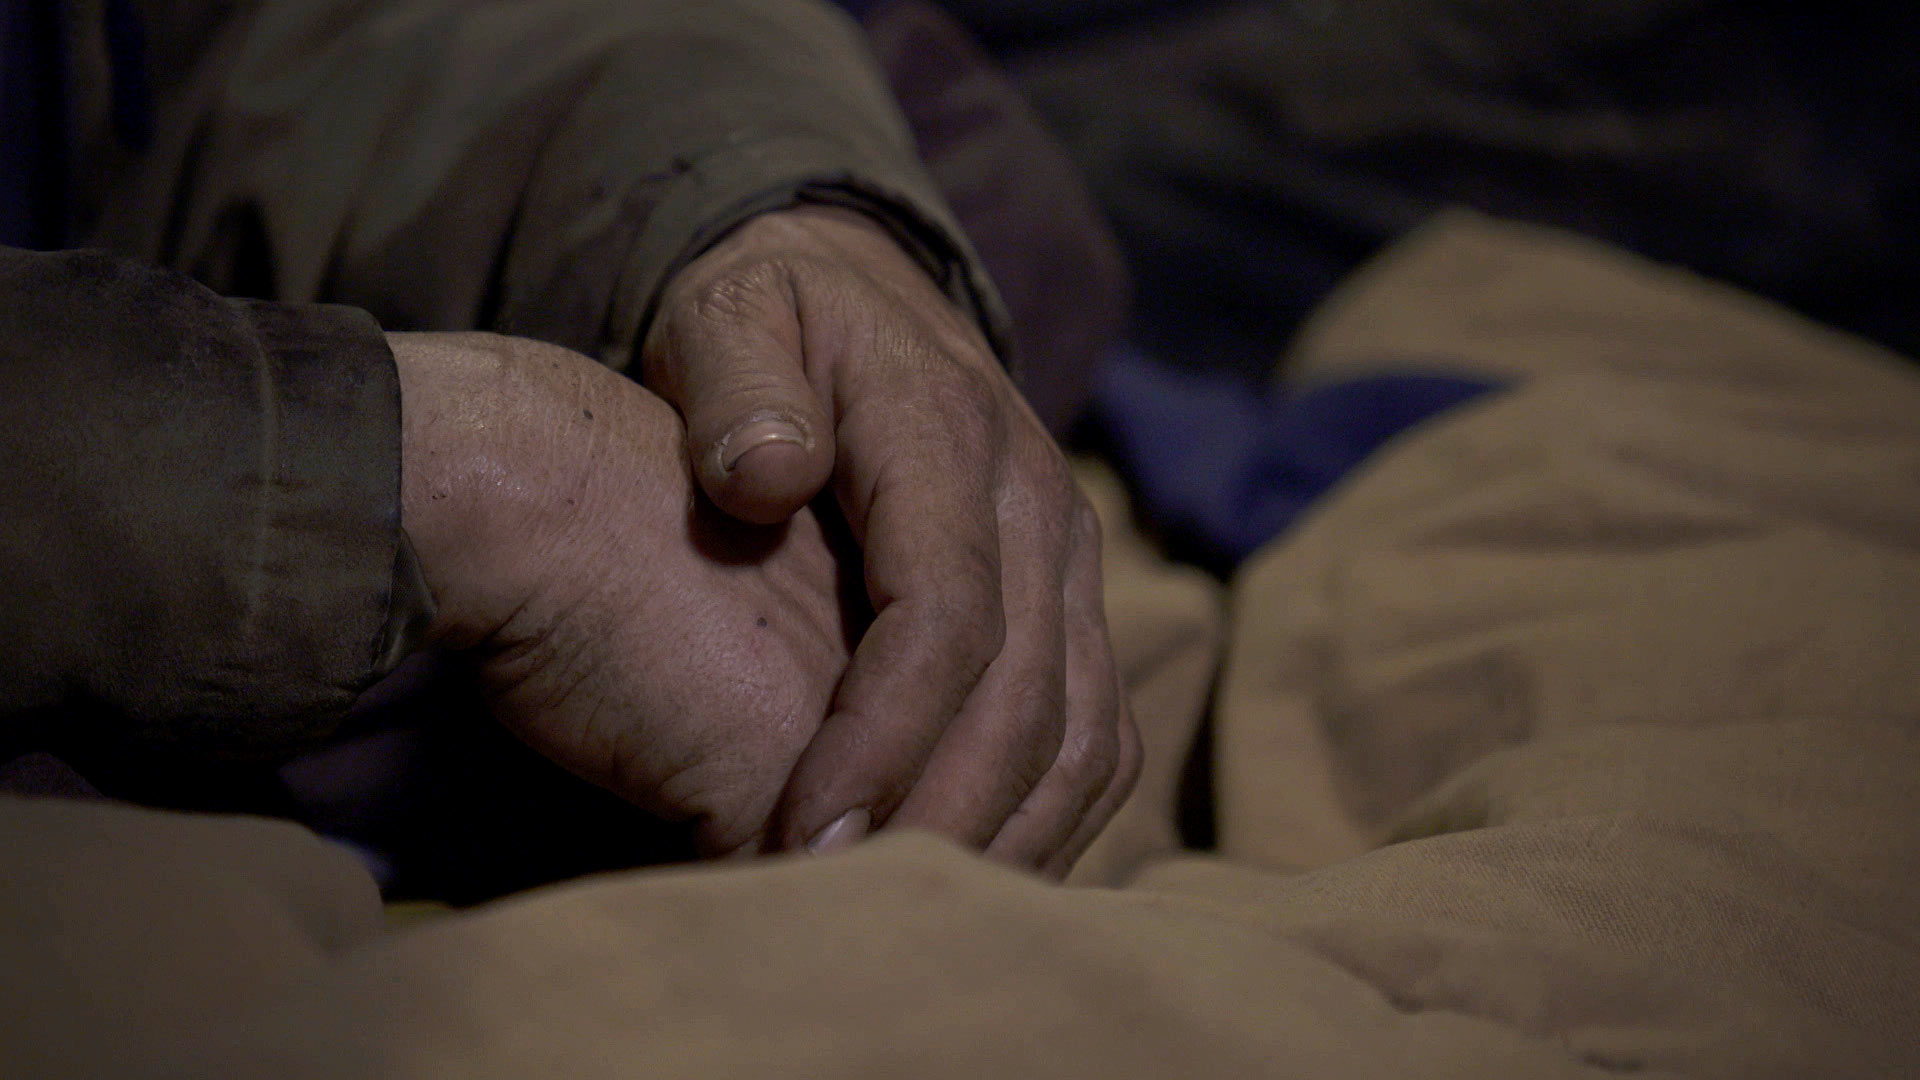 A close up of the hands of a man experiencing homelessness in Tucson. February 2021.